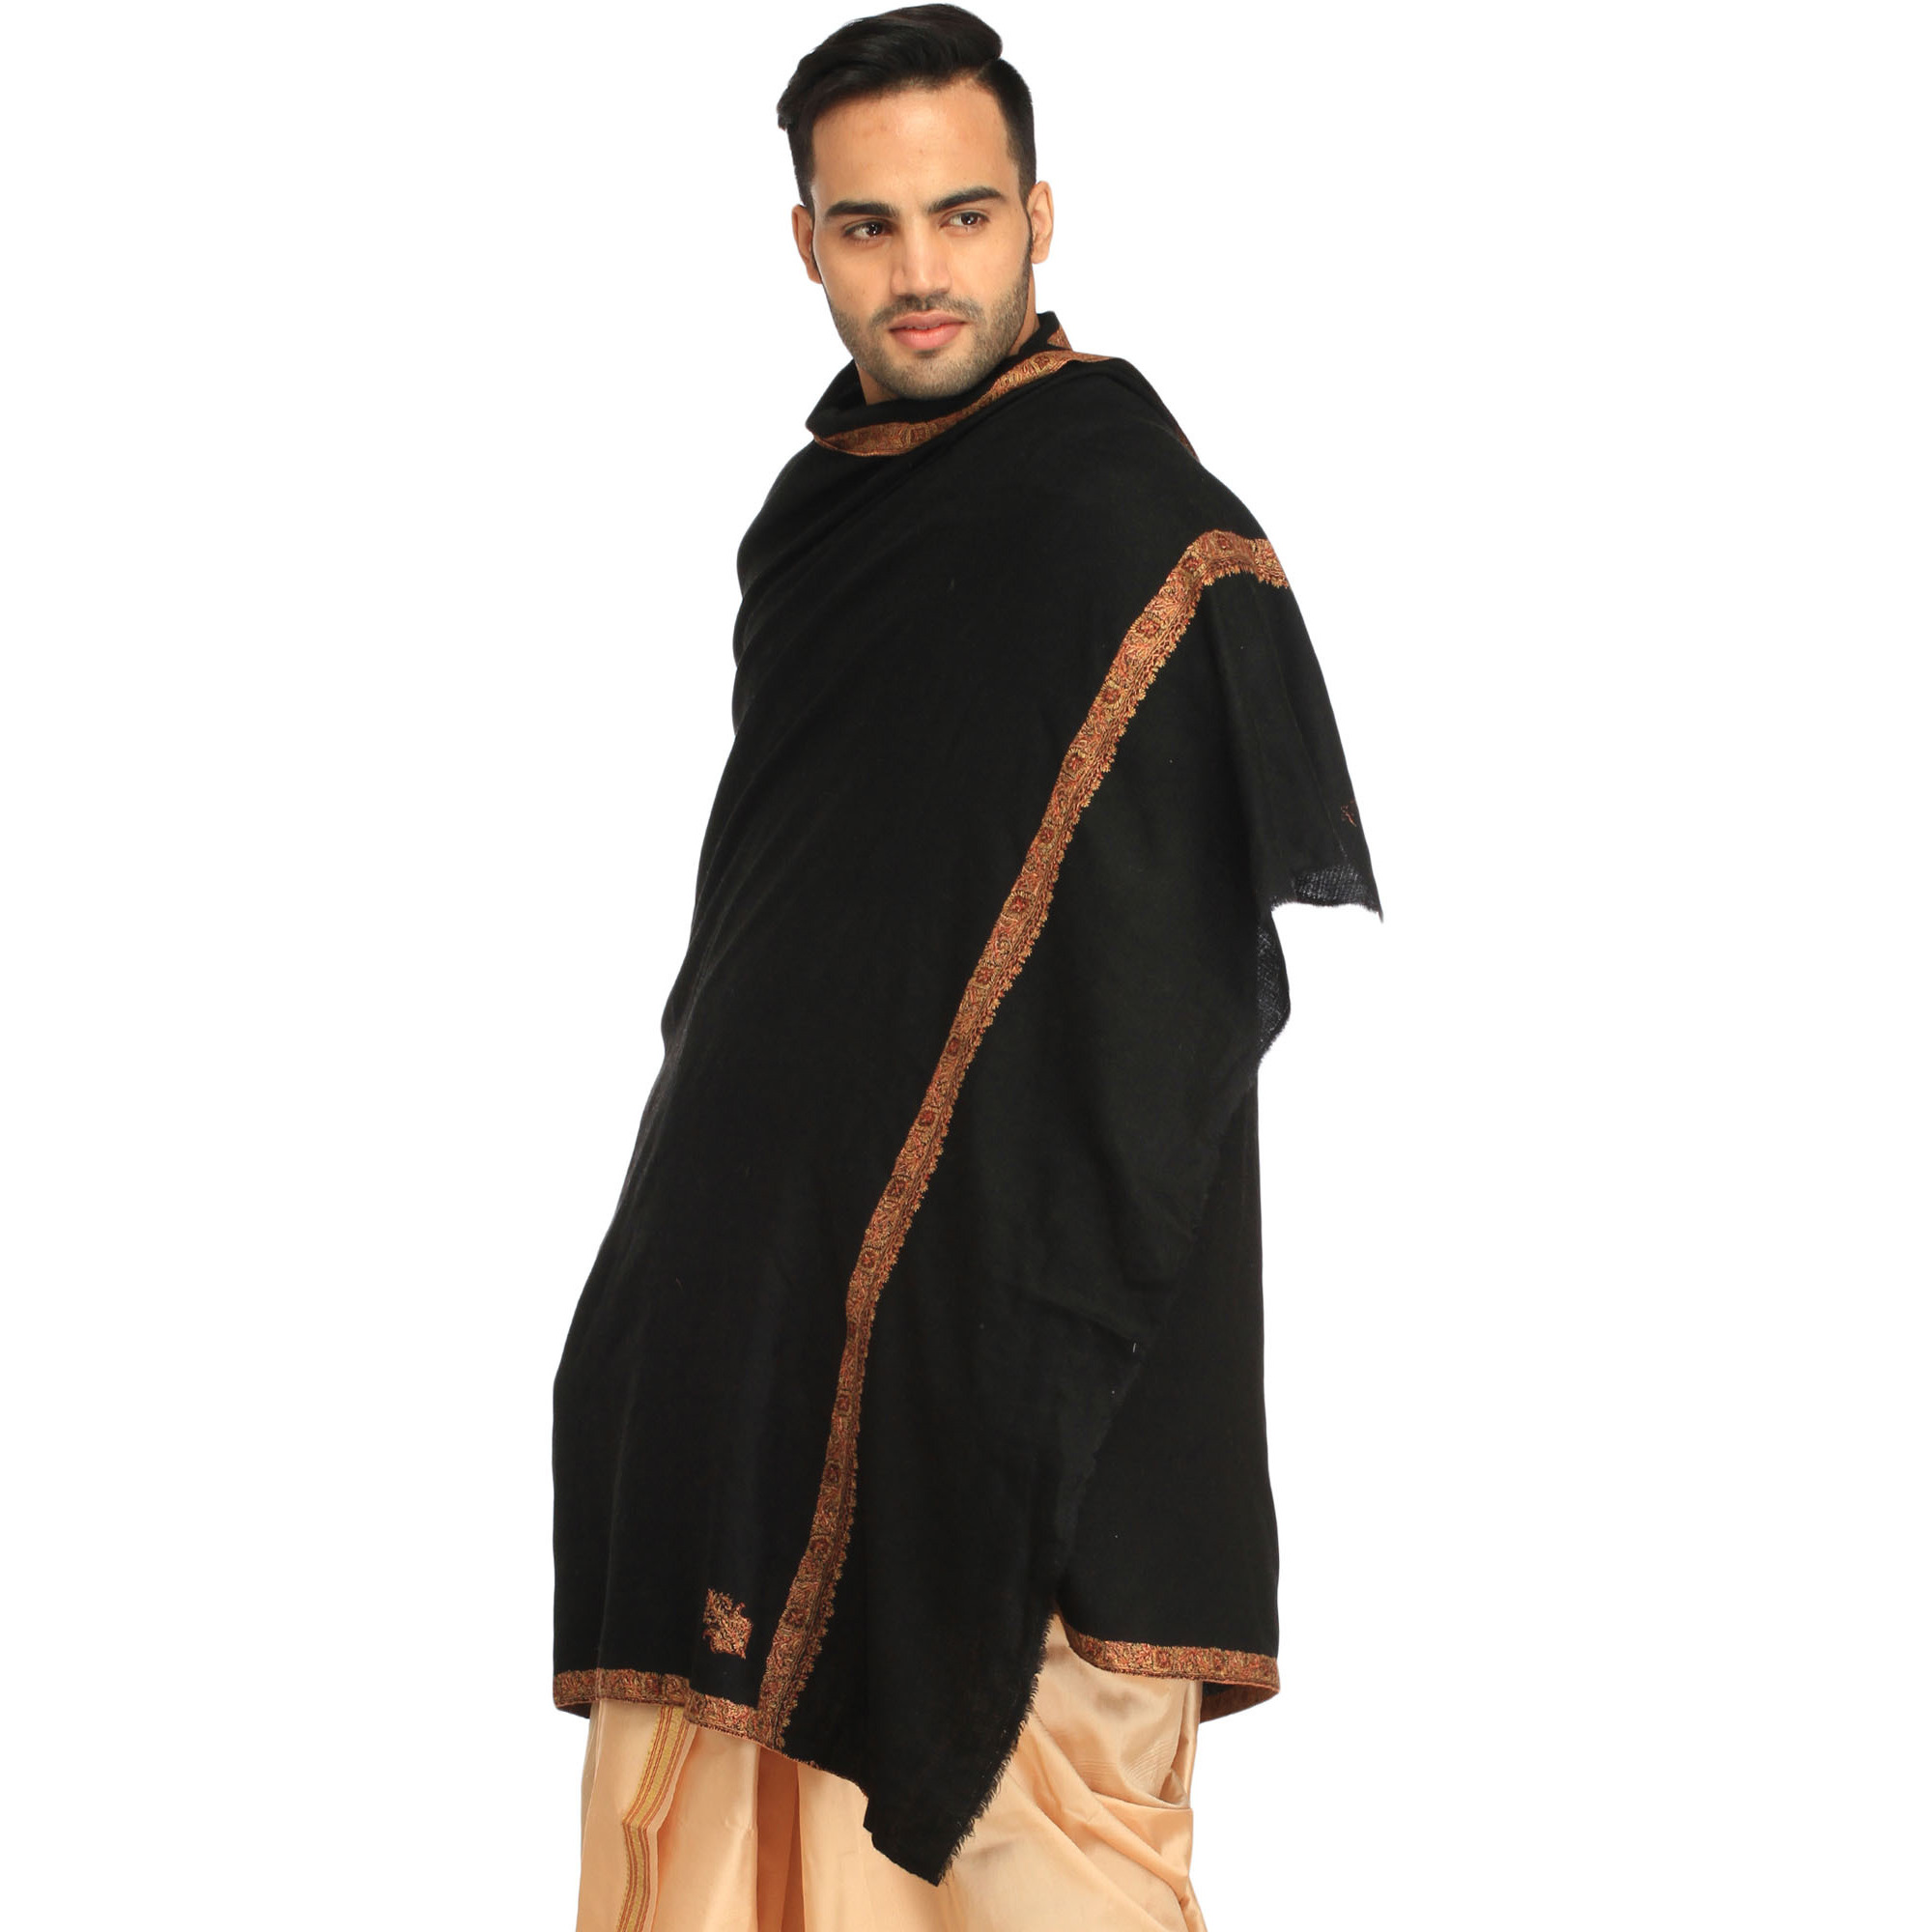 Jet-Black Plain Kashmiri Pashmina Shawl for Men with Sozni Hand-Embroidery on Border